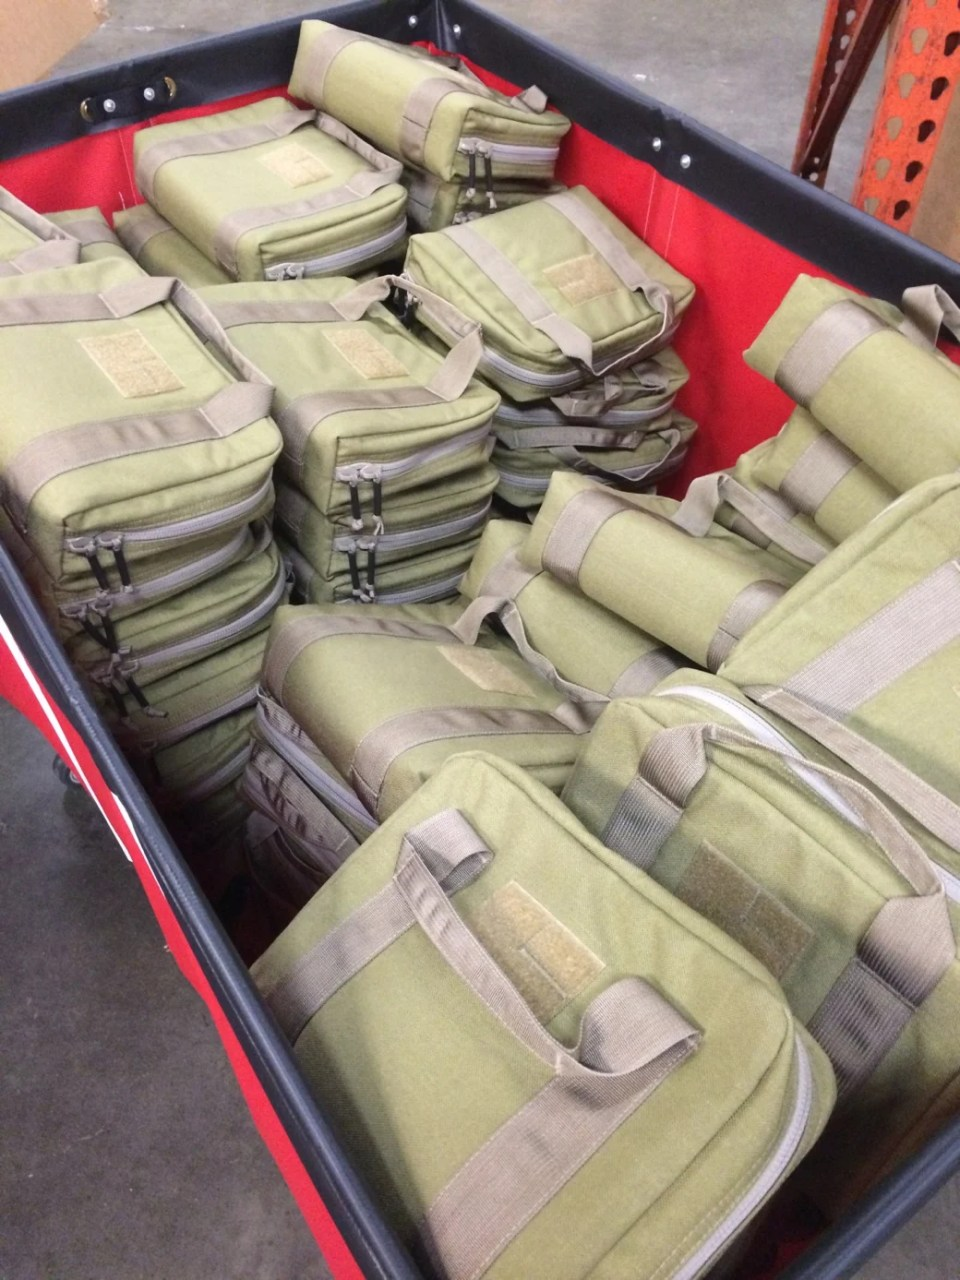 Firearms Gear_pre-order arrives in Seattle GORUCK Warehouse_03